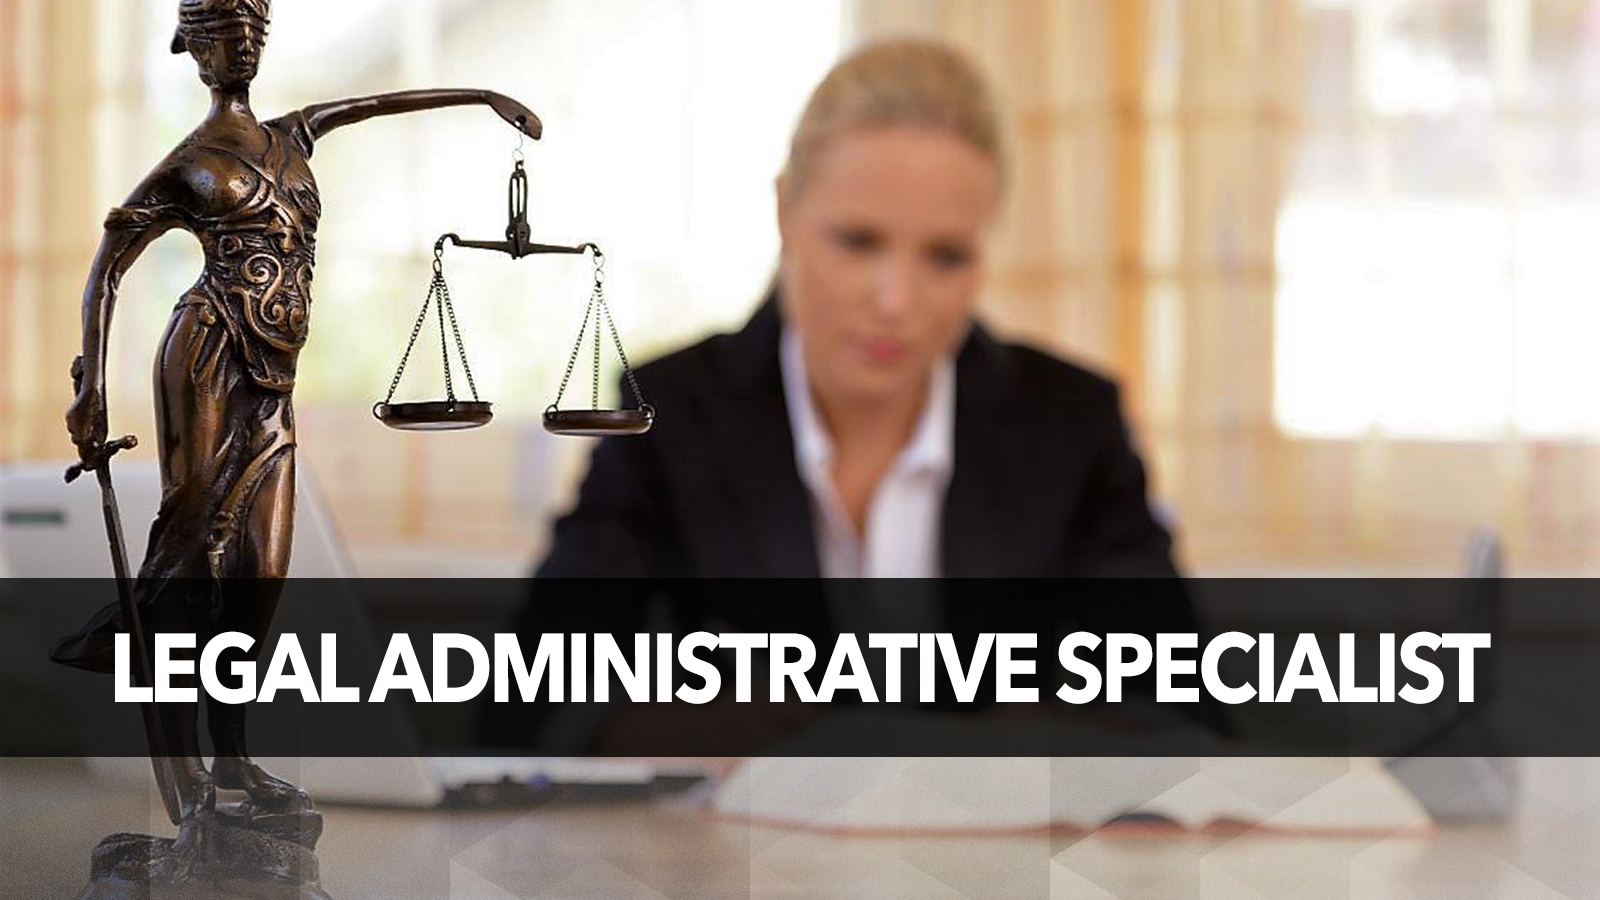 Legal Administrative Specialist